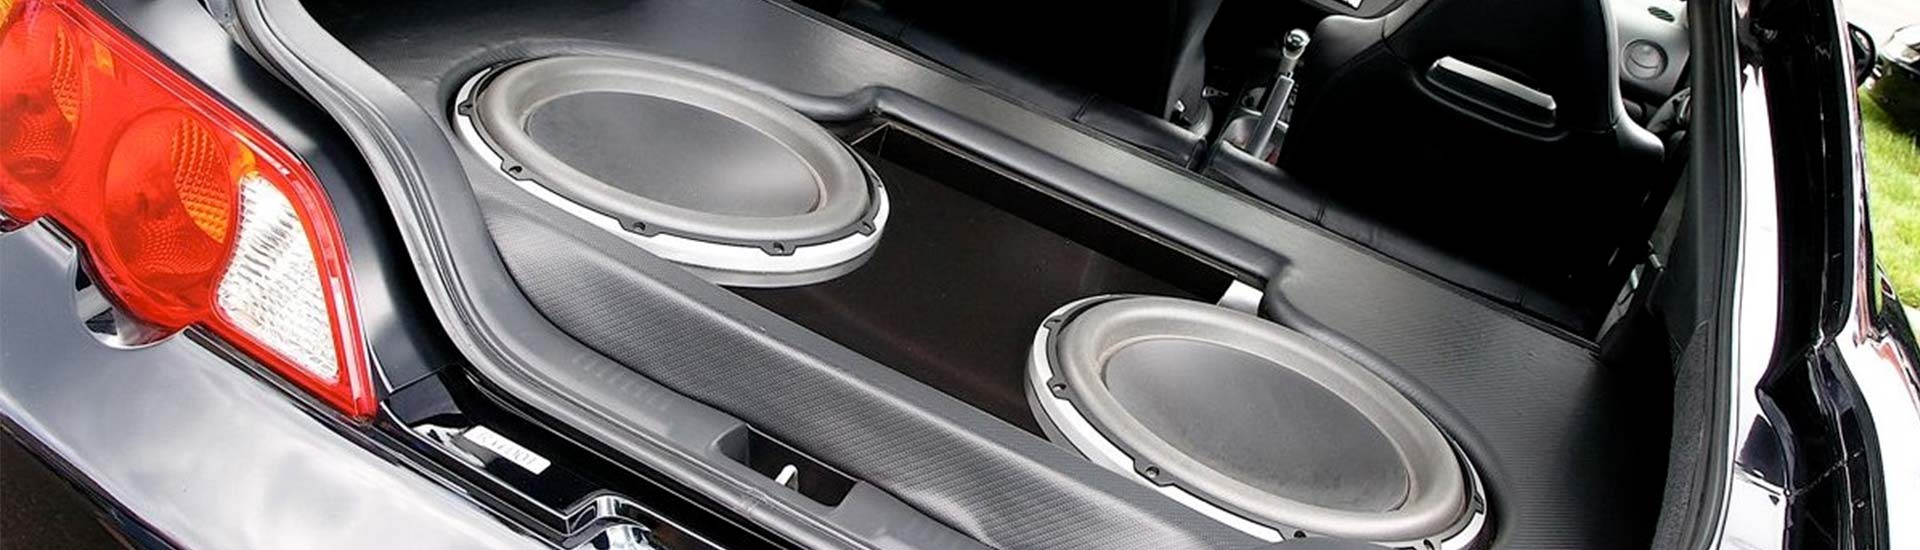 Tips on How to Upgrade Your Car Audio System and Speakers